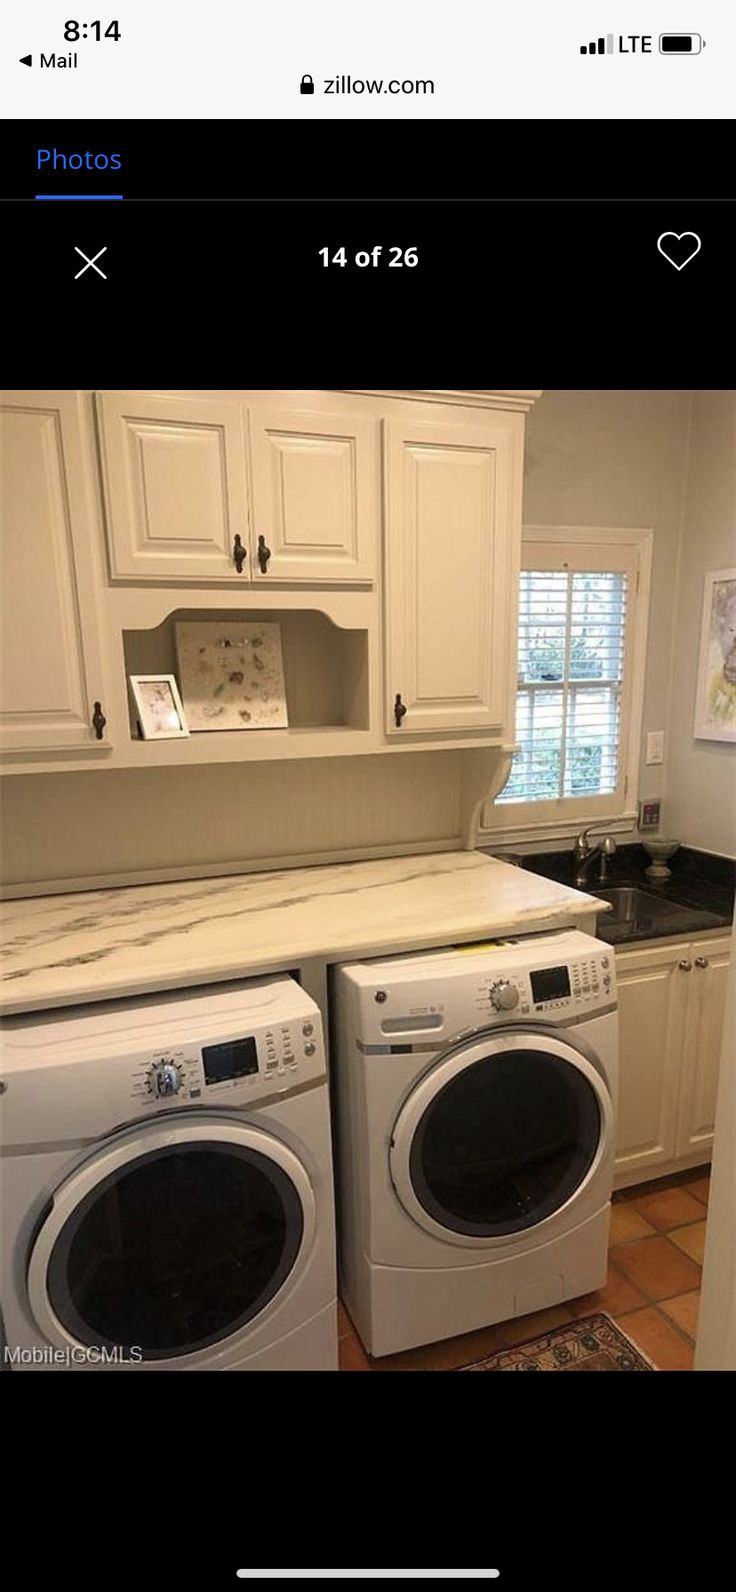 Pin by Lauren Bayly on laundry room in 2020 Laundry room